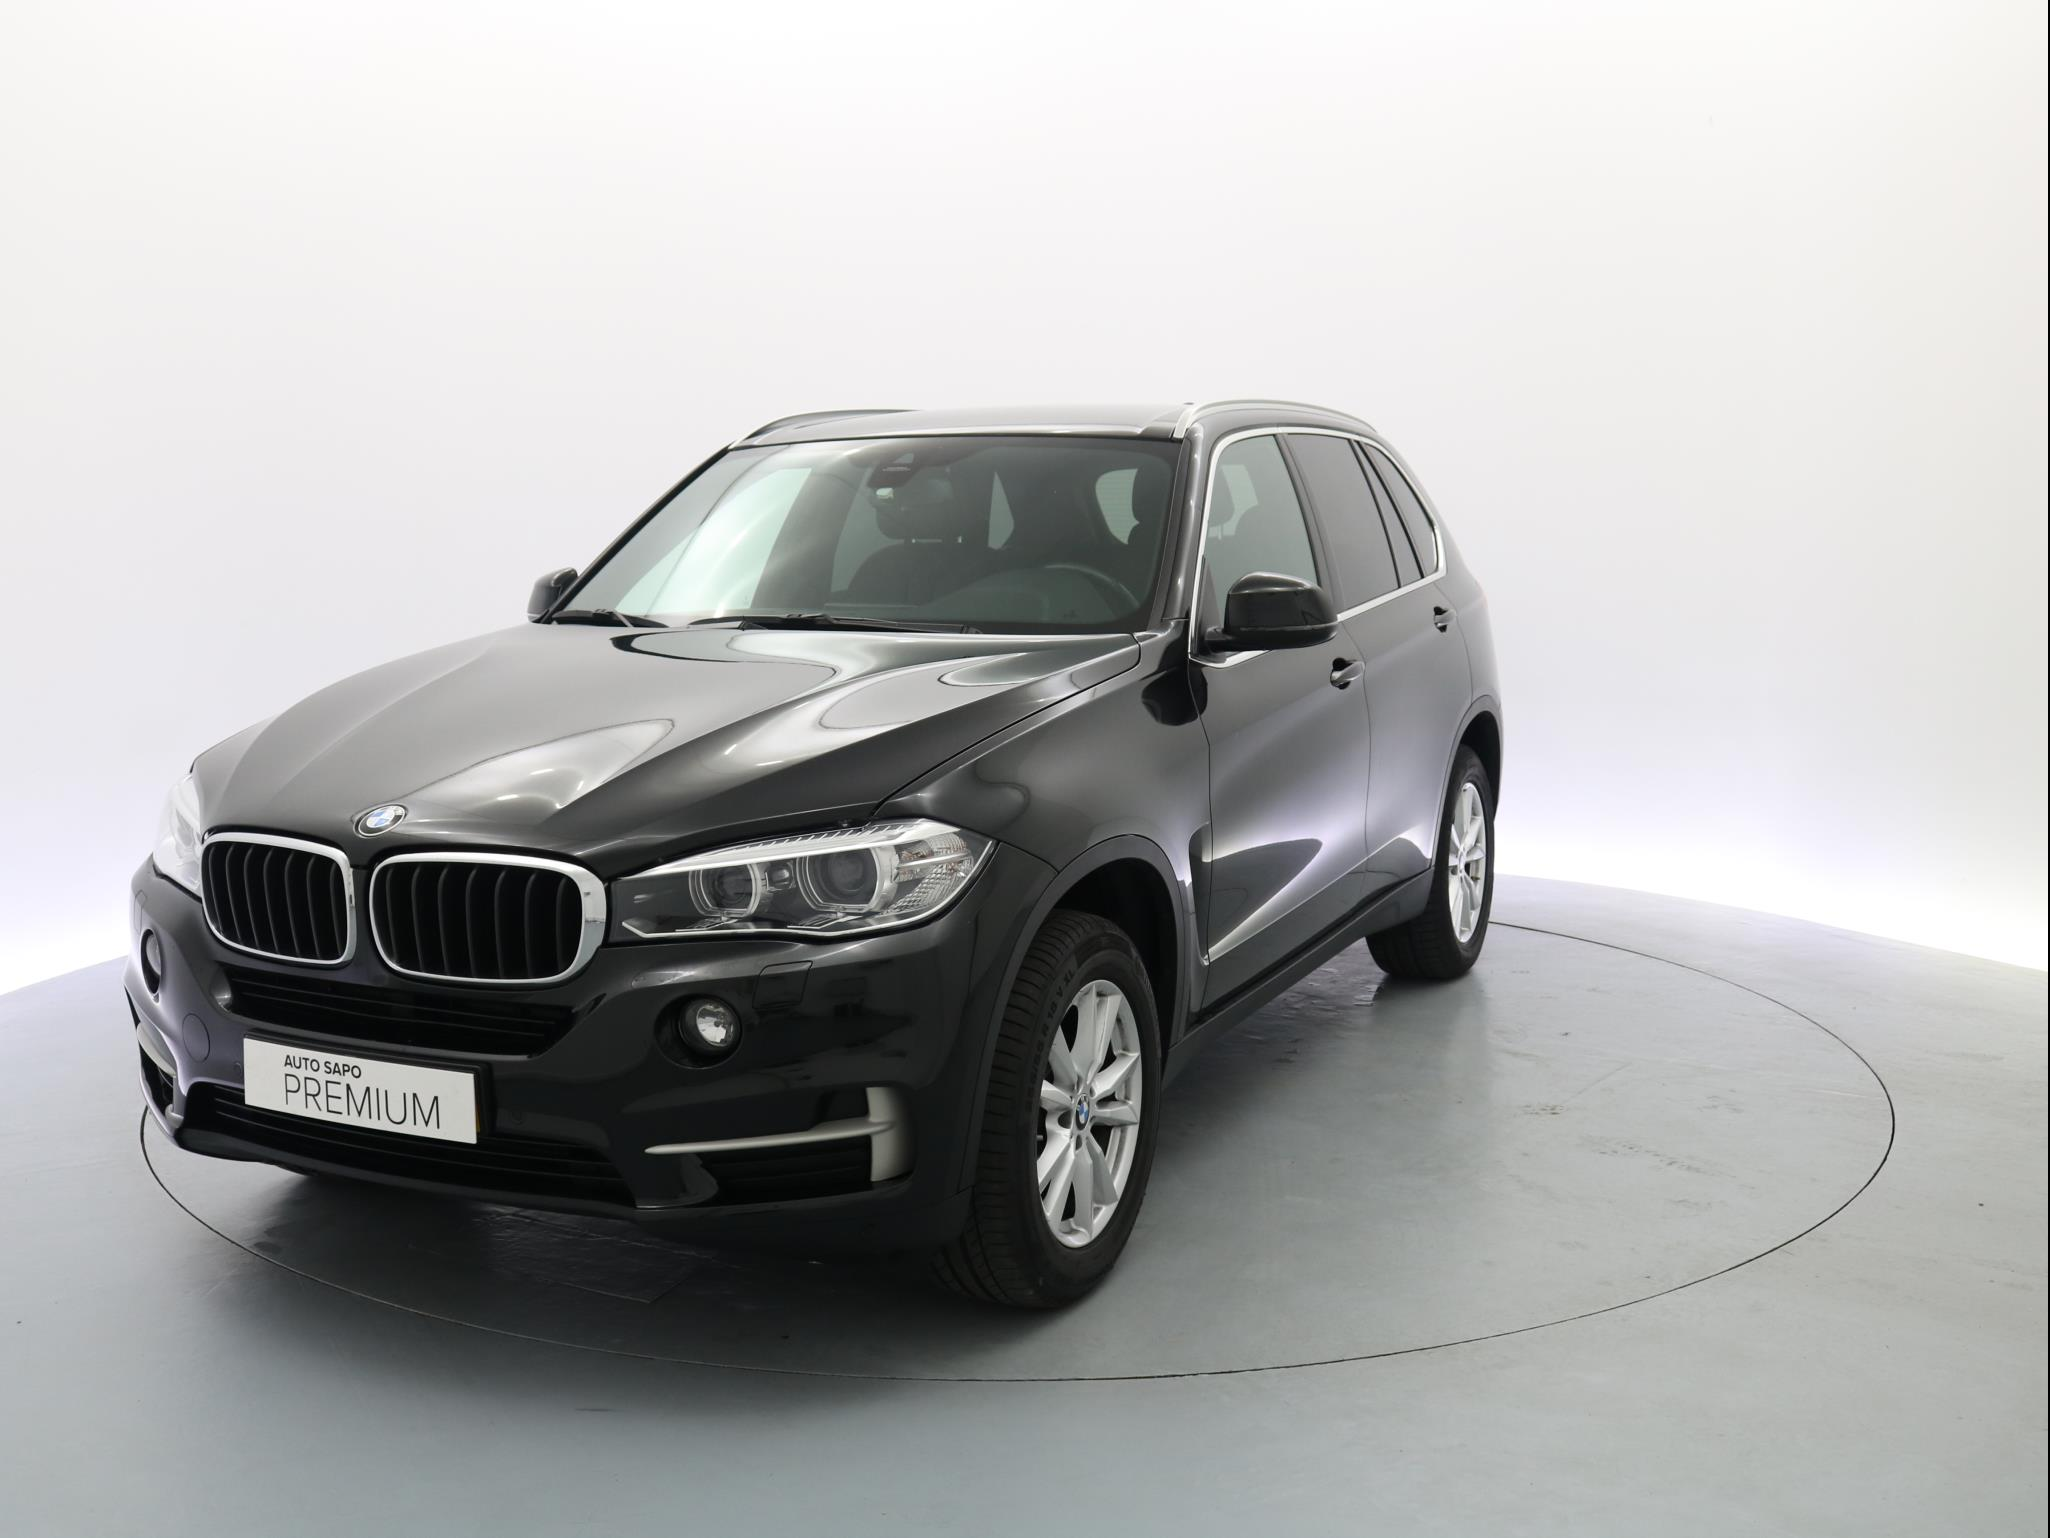 BMW X5 2.5D sDrive